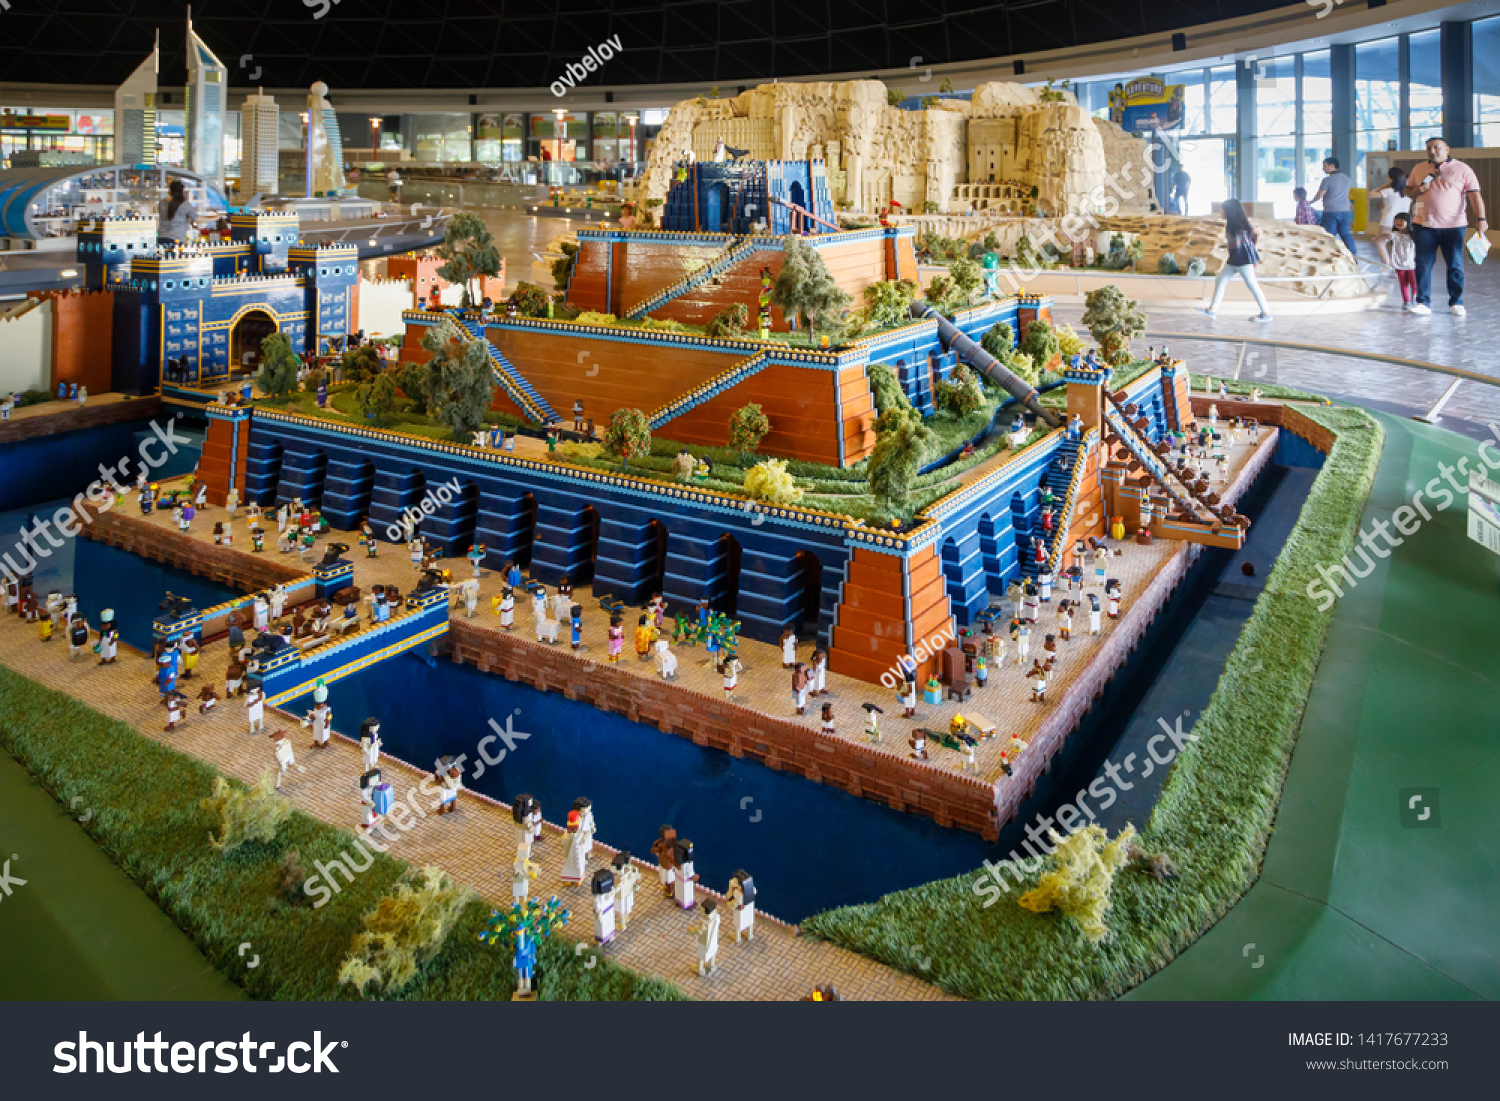 Hanging Gardens Of Babylon Stock Photos Images Photography